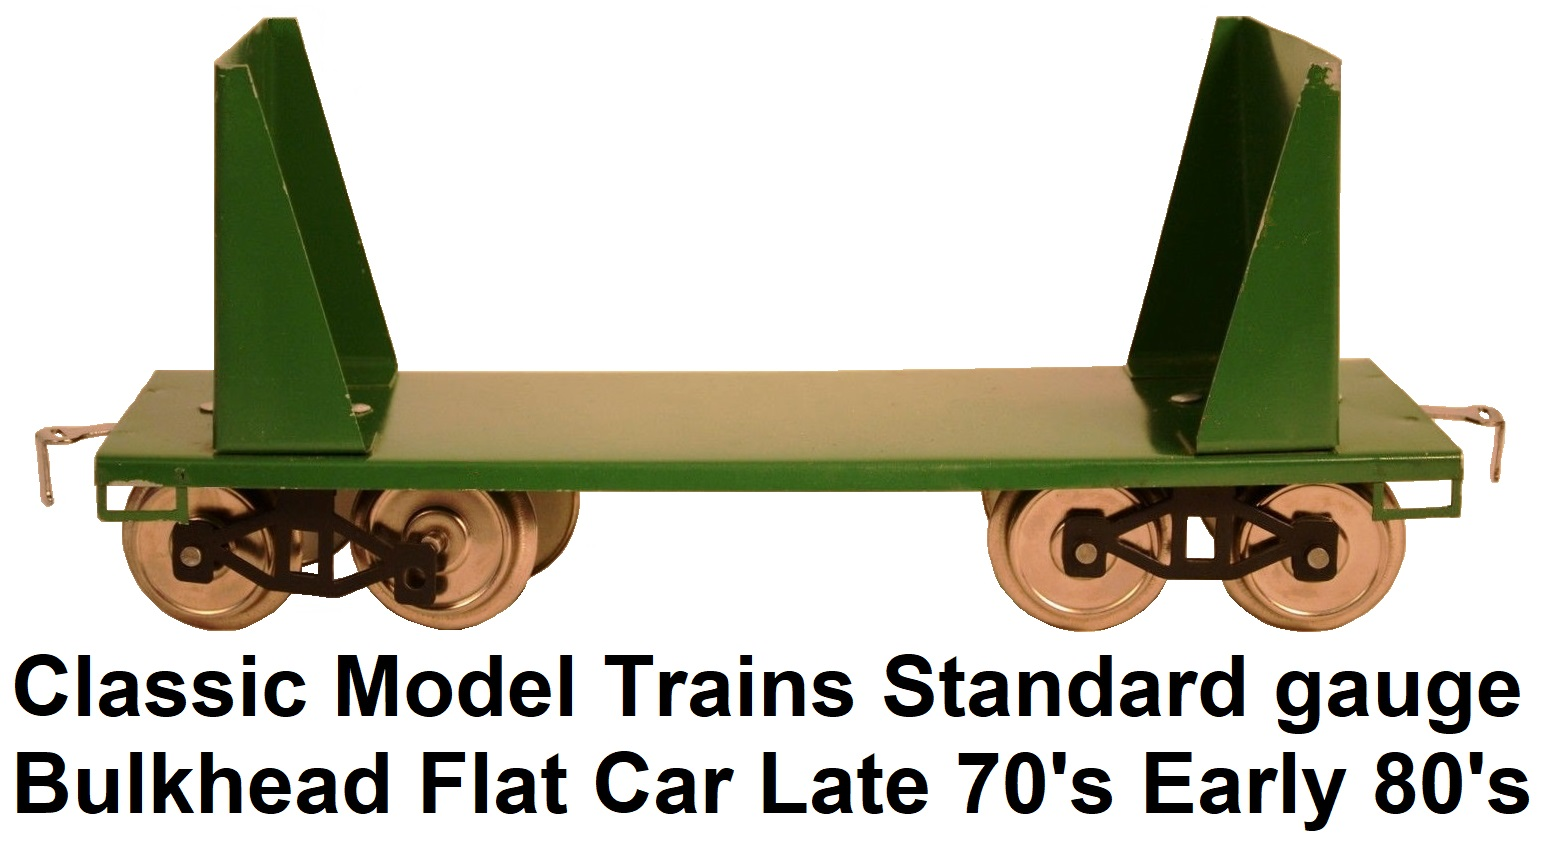 Classic Model Trains Standard gauge Bulkhead flat car late 70's early 80's